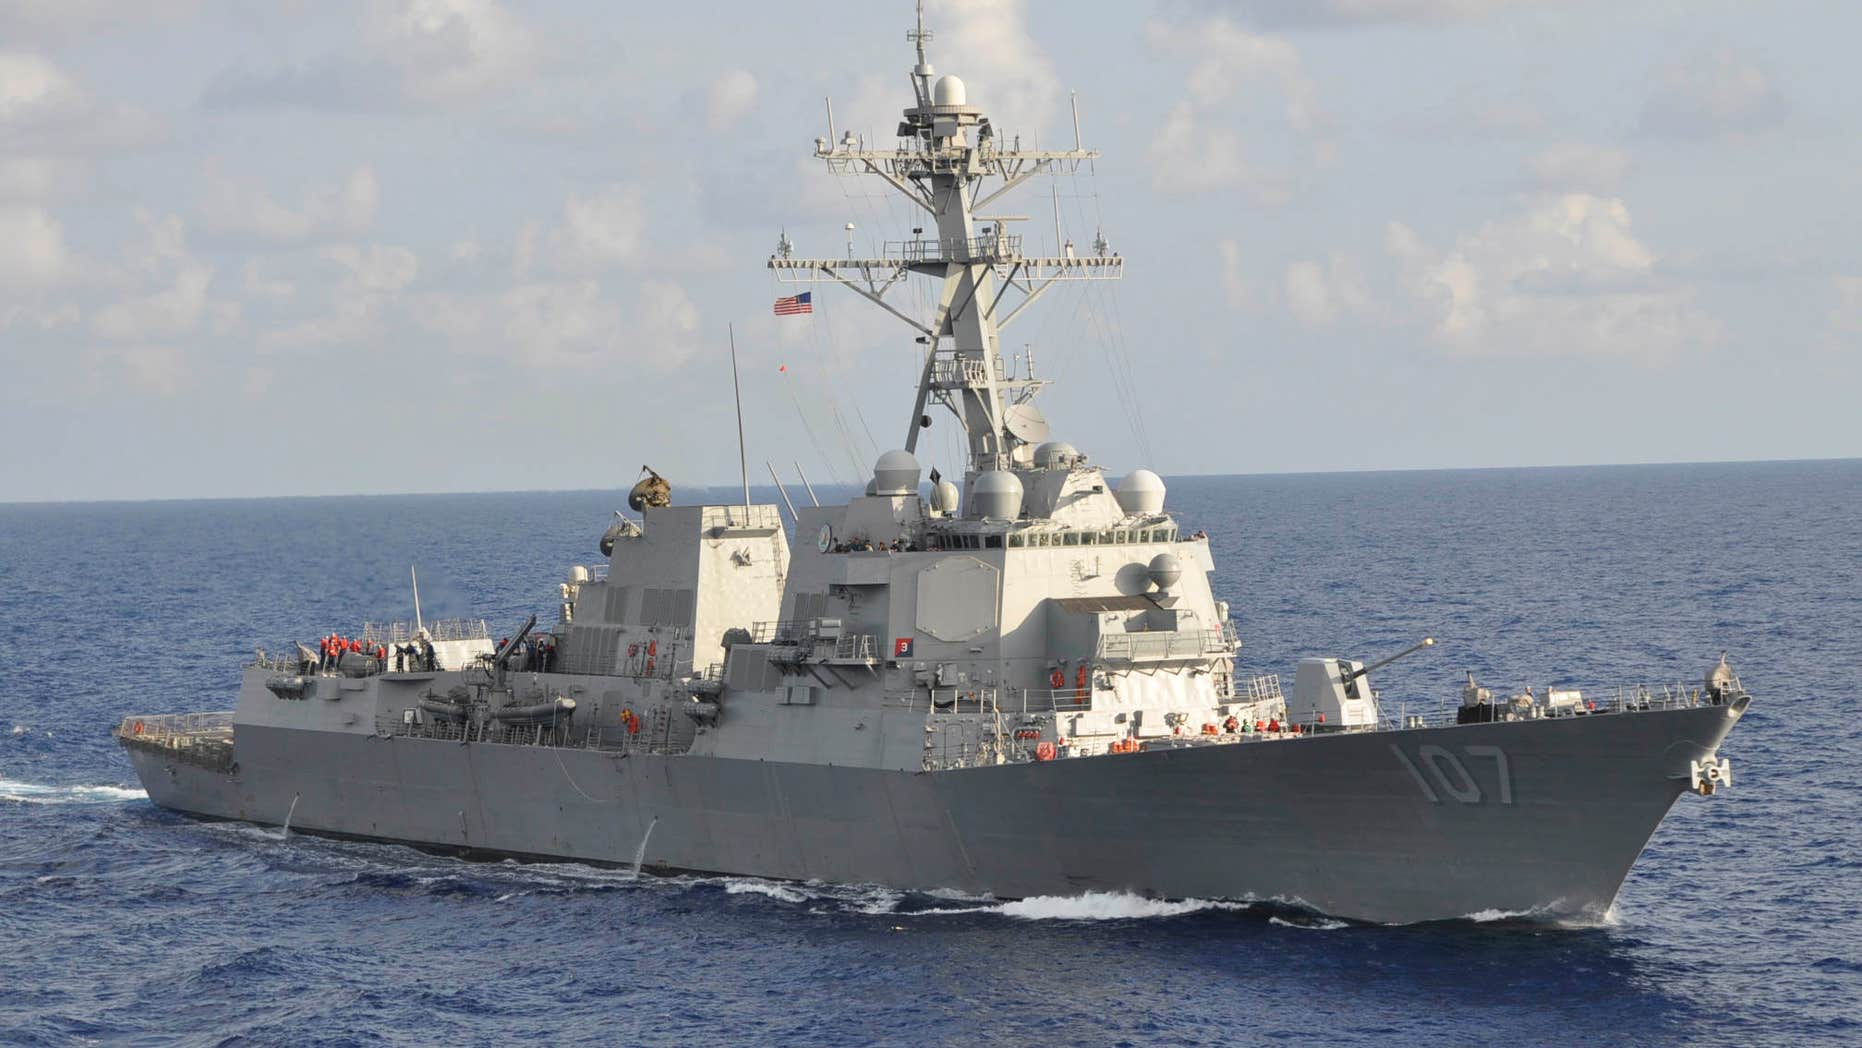 Sept. 25, 2012: The Arleigh Burke-class guided-missile destroyer USS Gravely (DDG 107) is pictured underway during the multinational UNITAS Atlantic 53-2012 exercise conducted in the western Caribbean Sea.